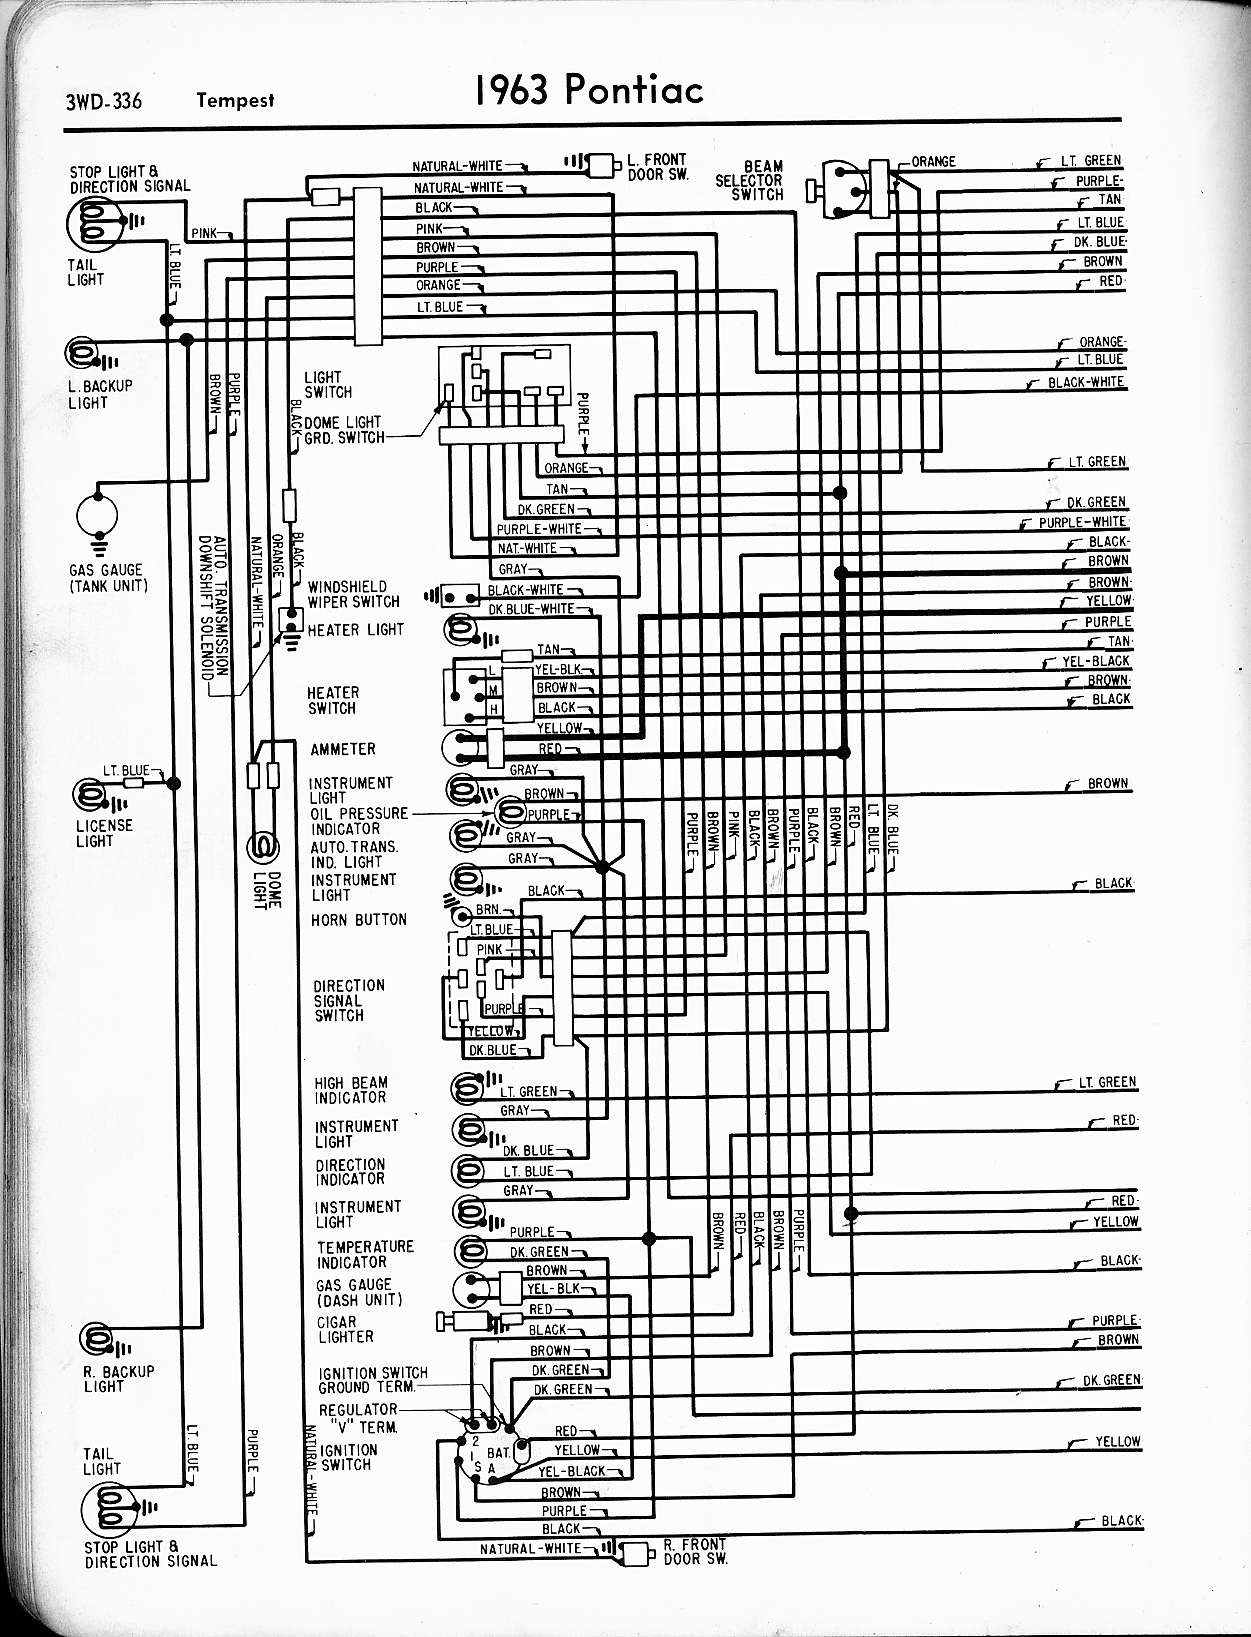 Wiring Diagram 1970 Pontiac Lemans Libraries Harness Library